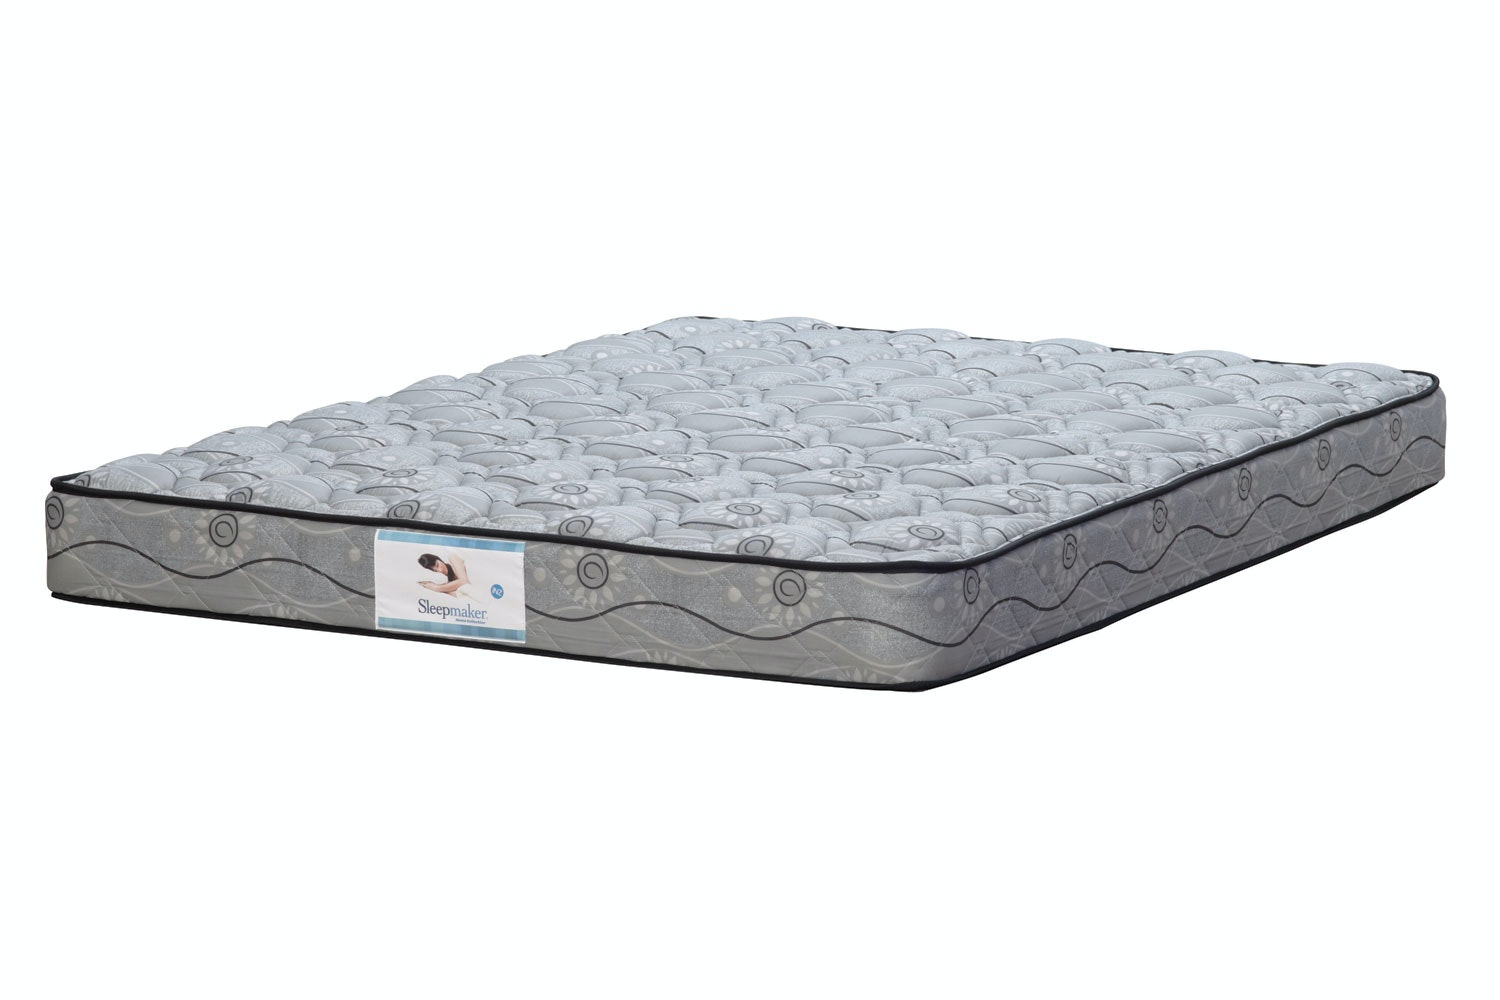 Slumber Support Medium Super King Mattress by Sleepmaker